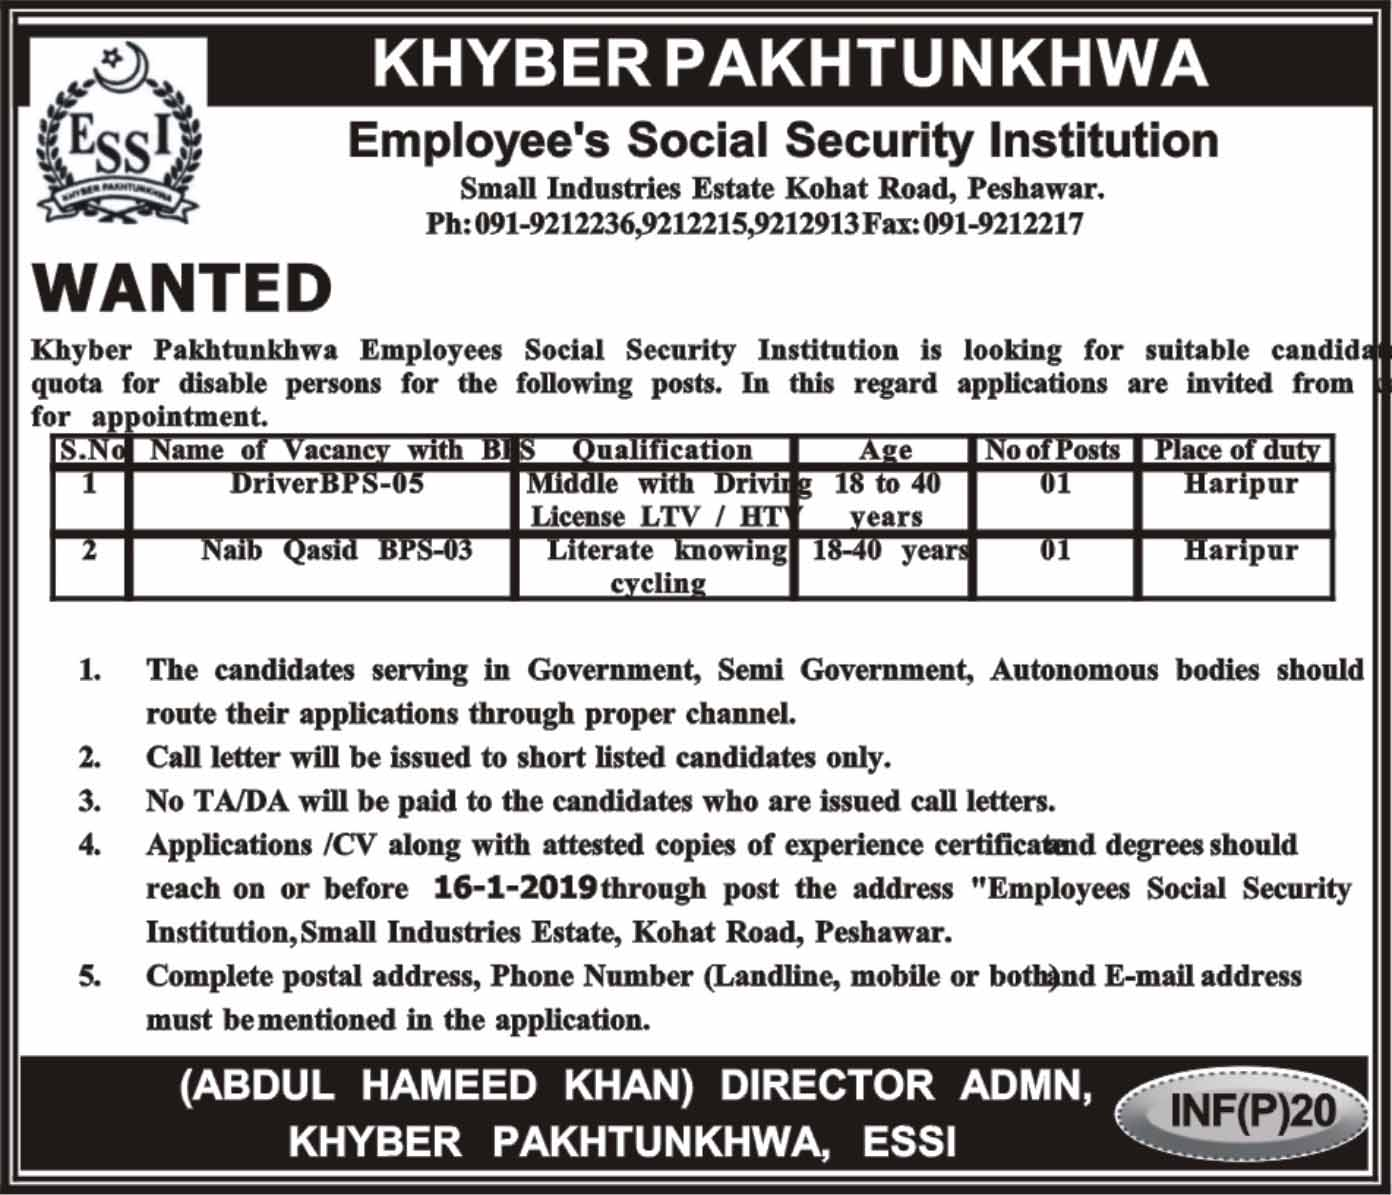 KPK Employees Social Security Institution Jobs for Drivers, Naibqasid 2019